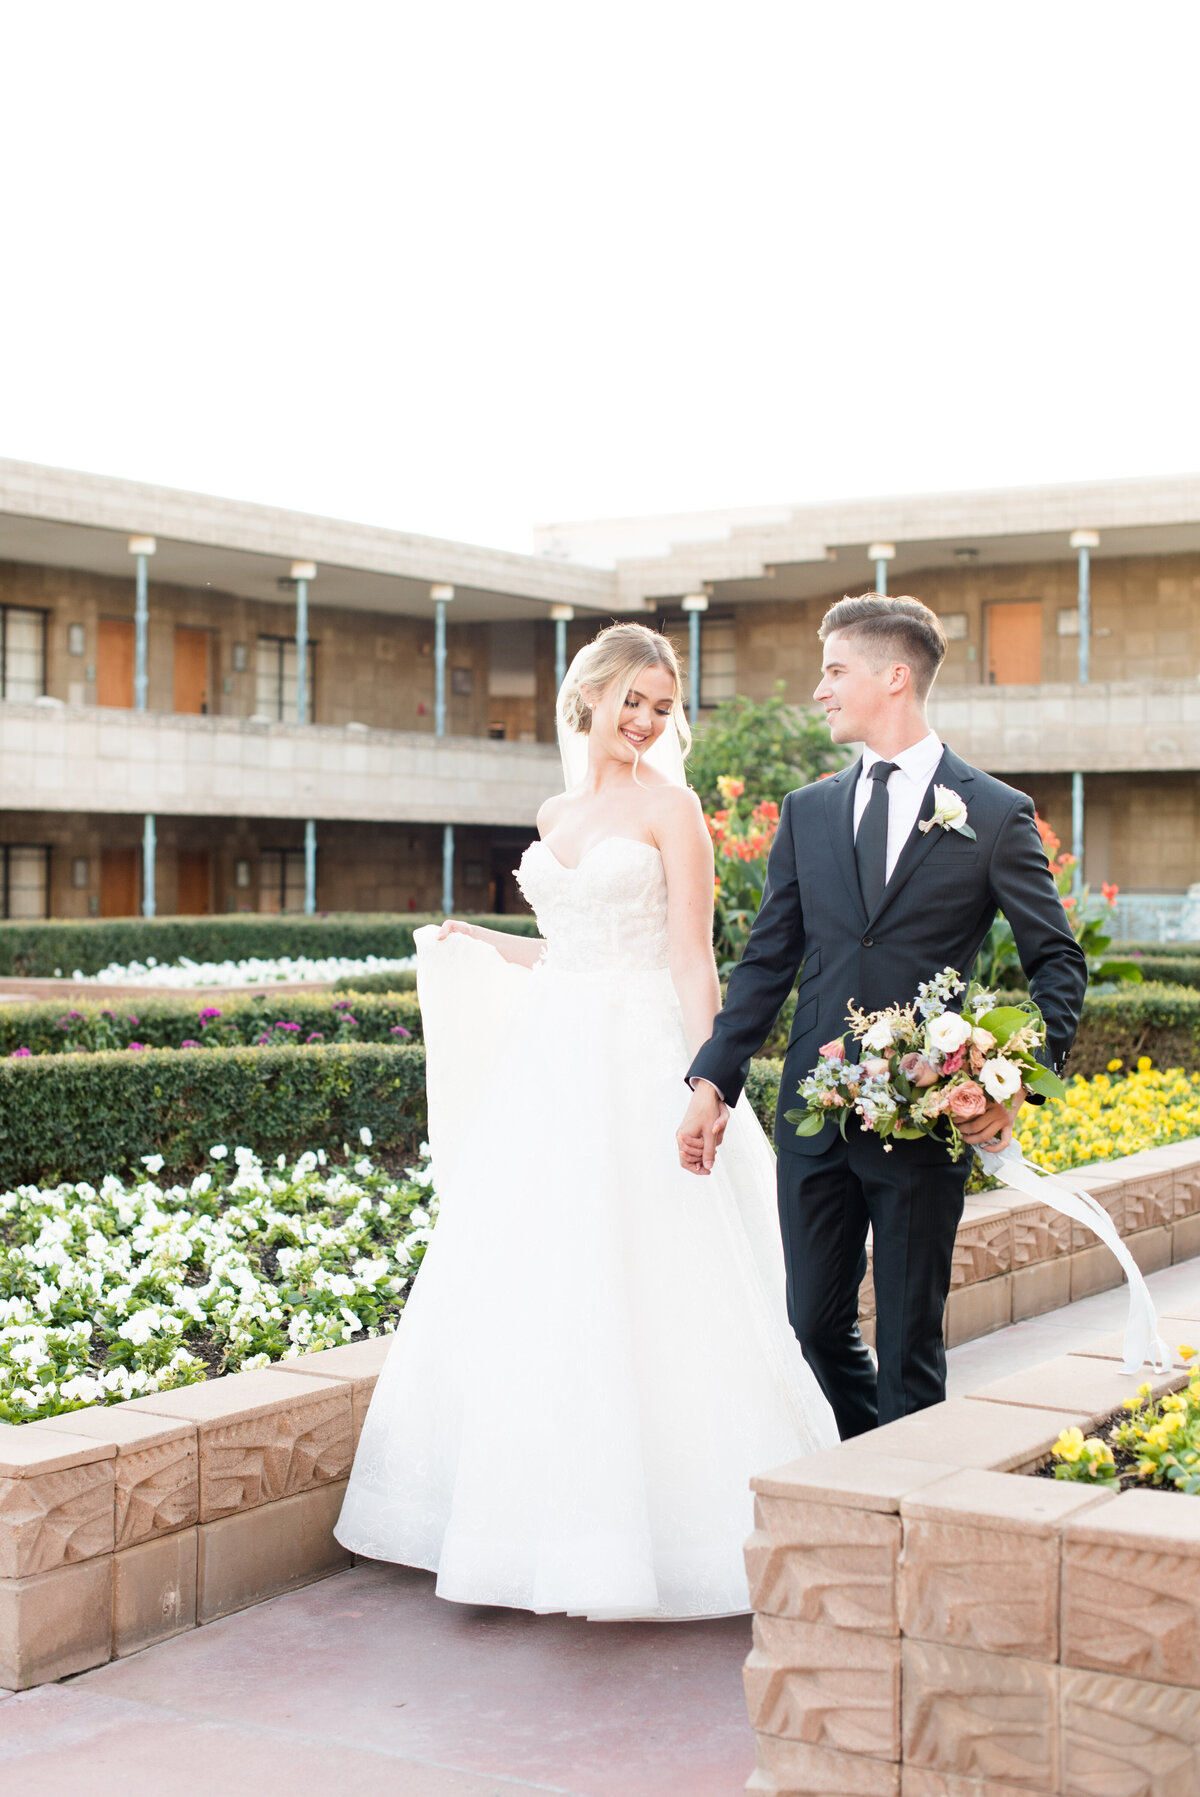 A groom leads his bride through the garden at the Arizona Biltmore Hotel